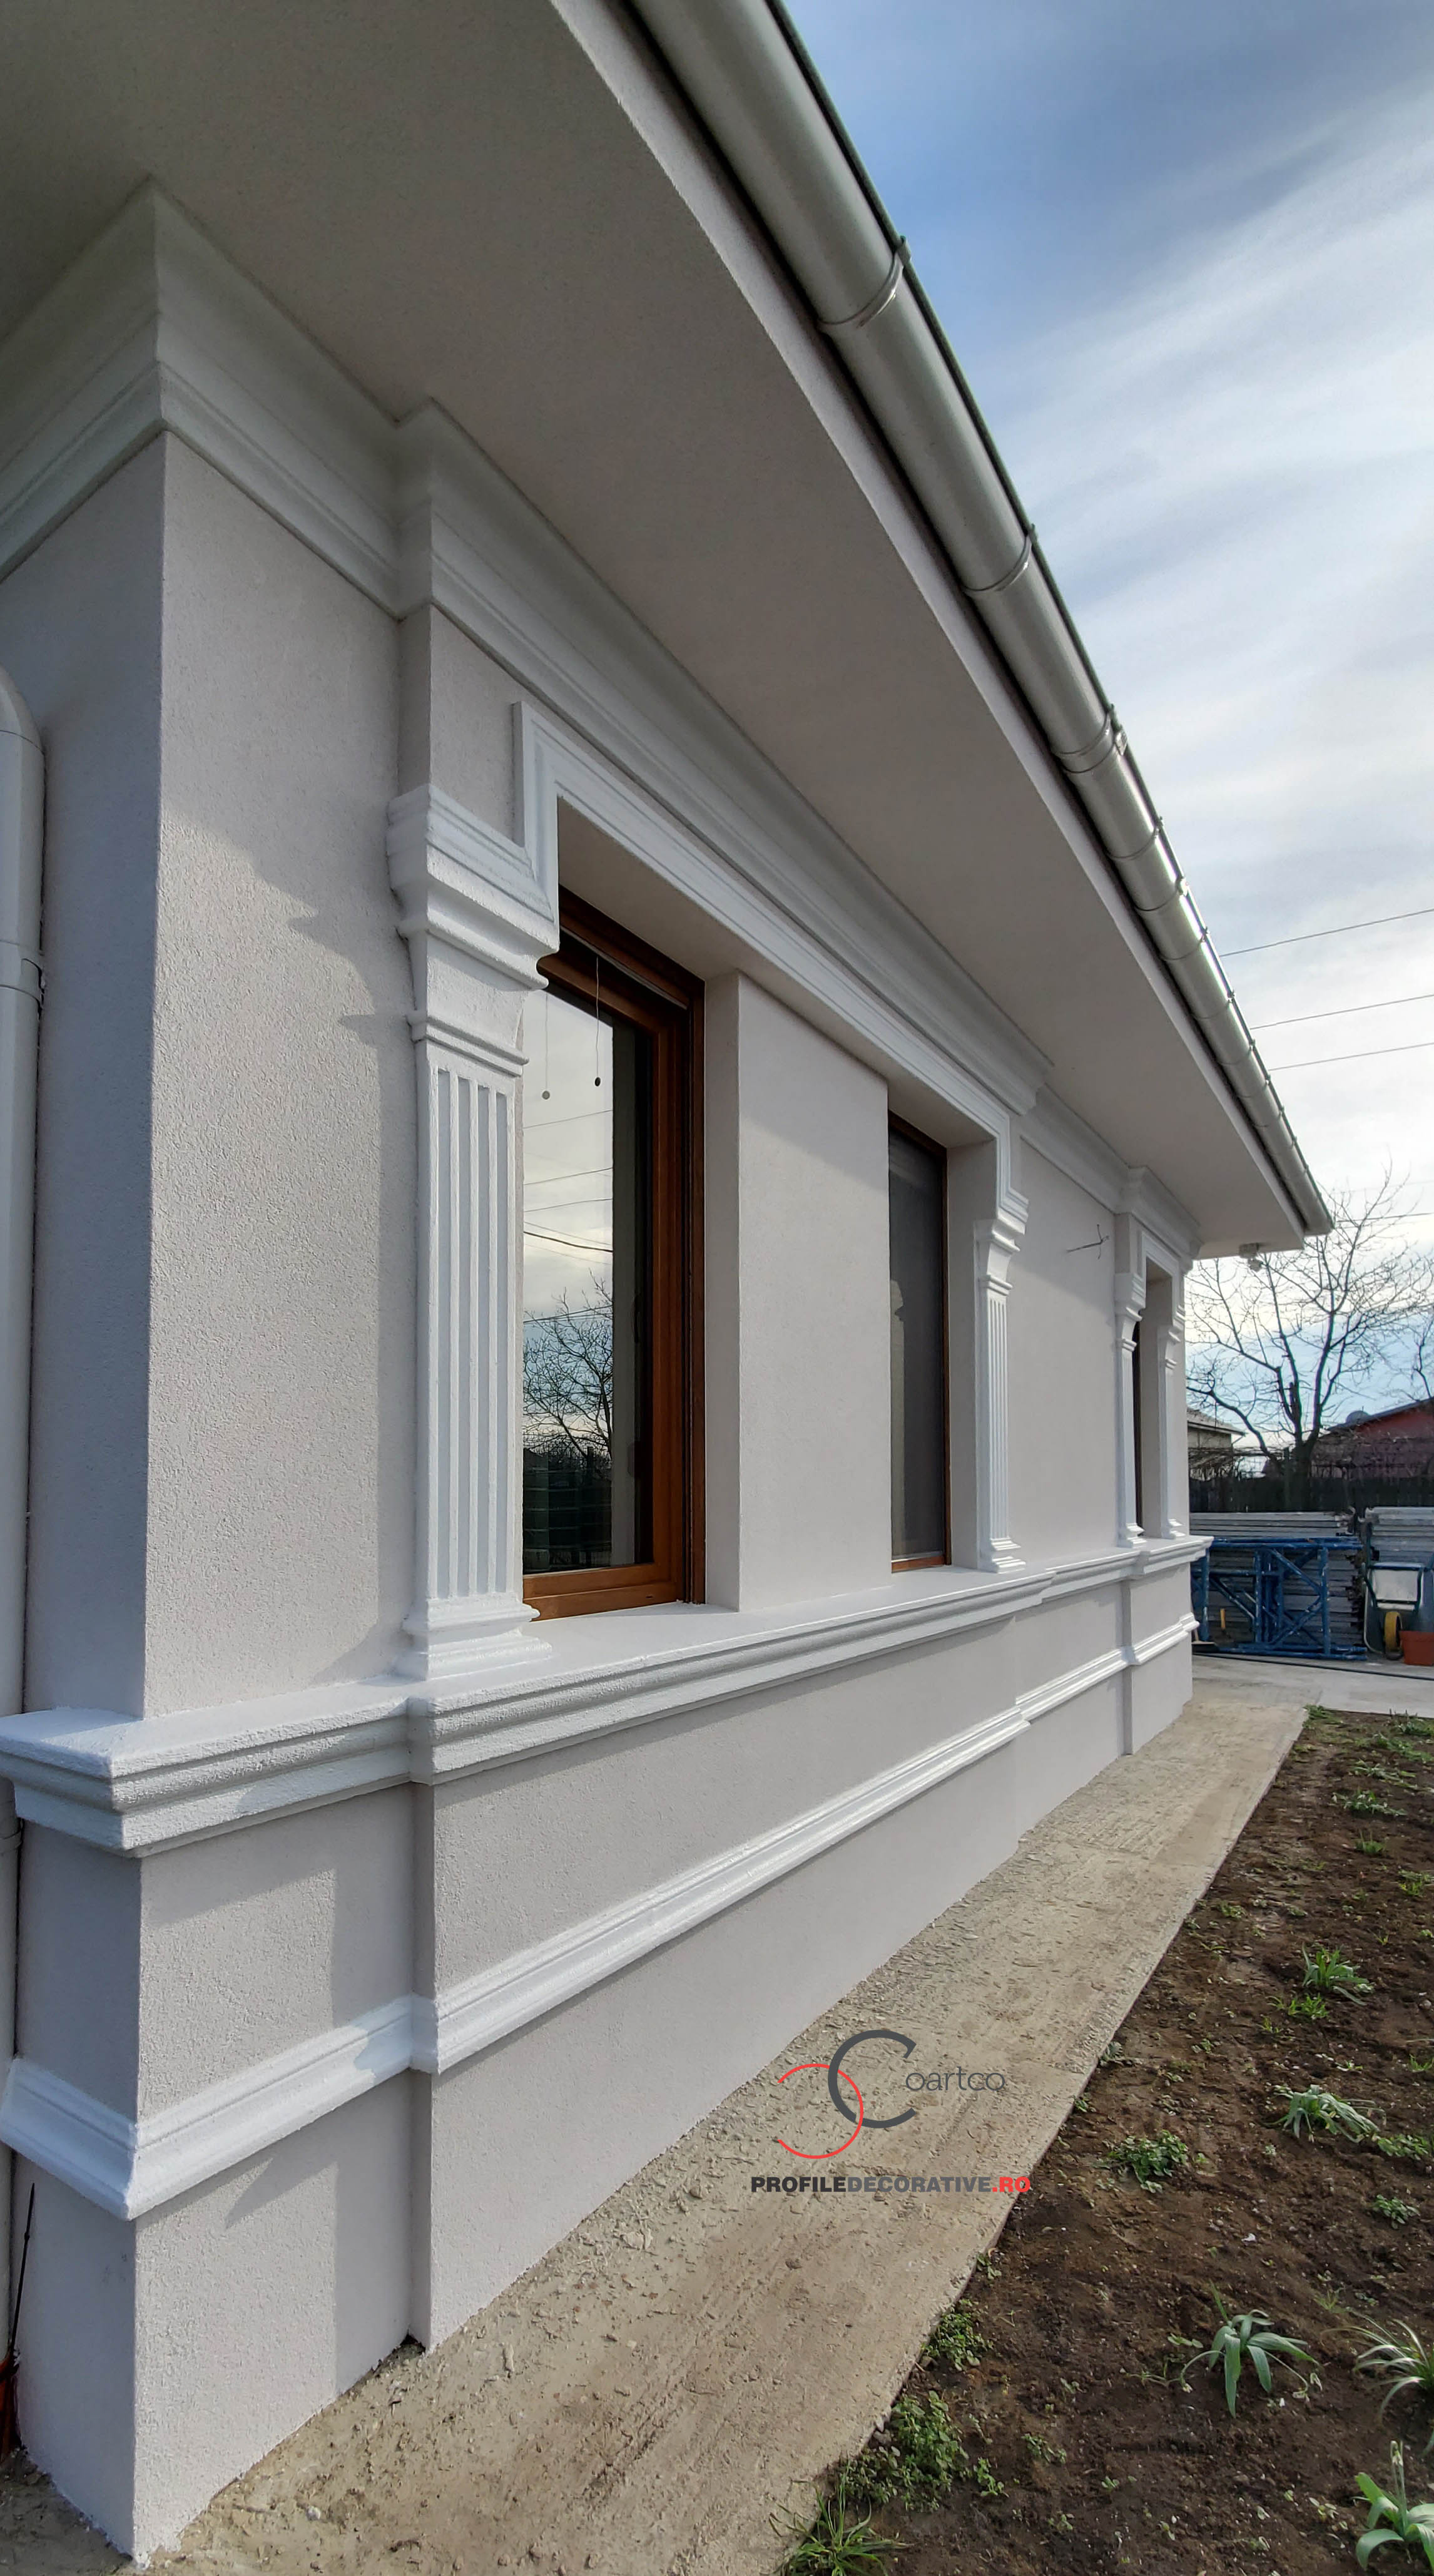 profile decorative birou firma arhitectura design fatada